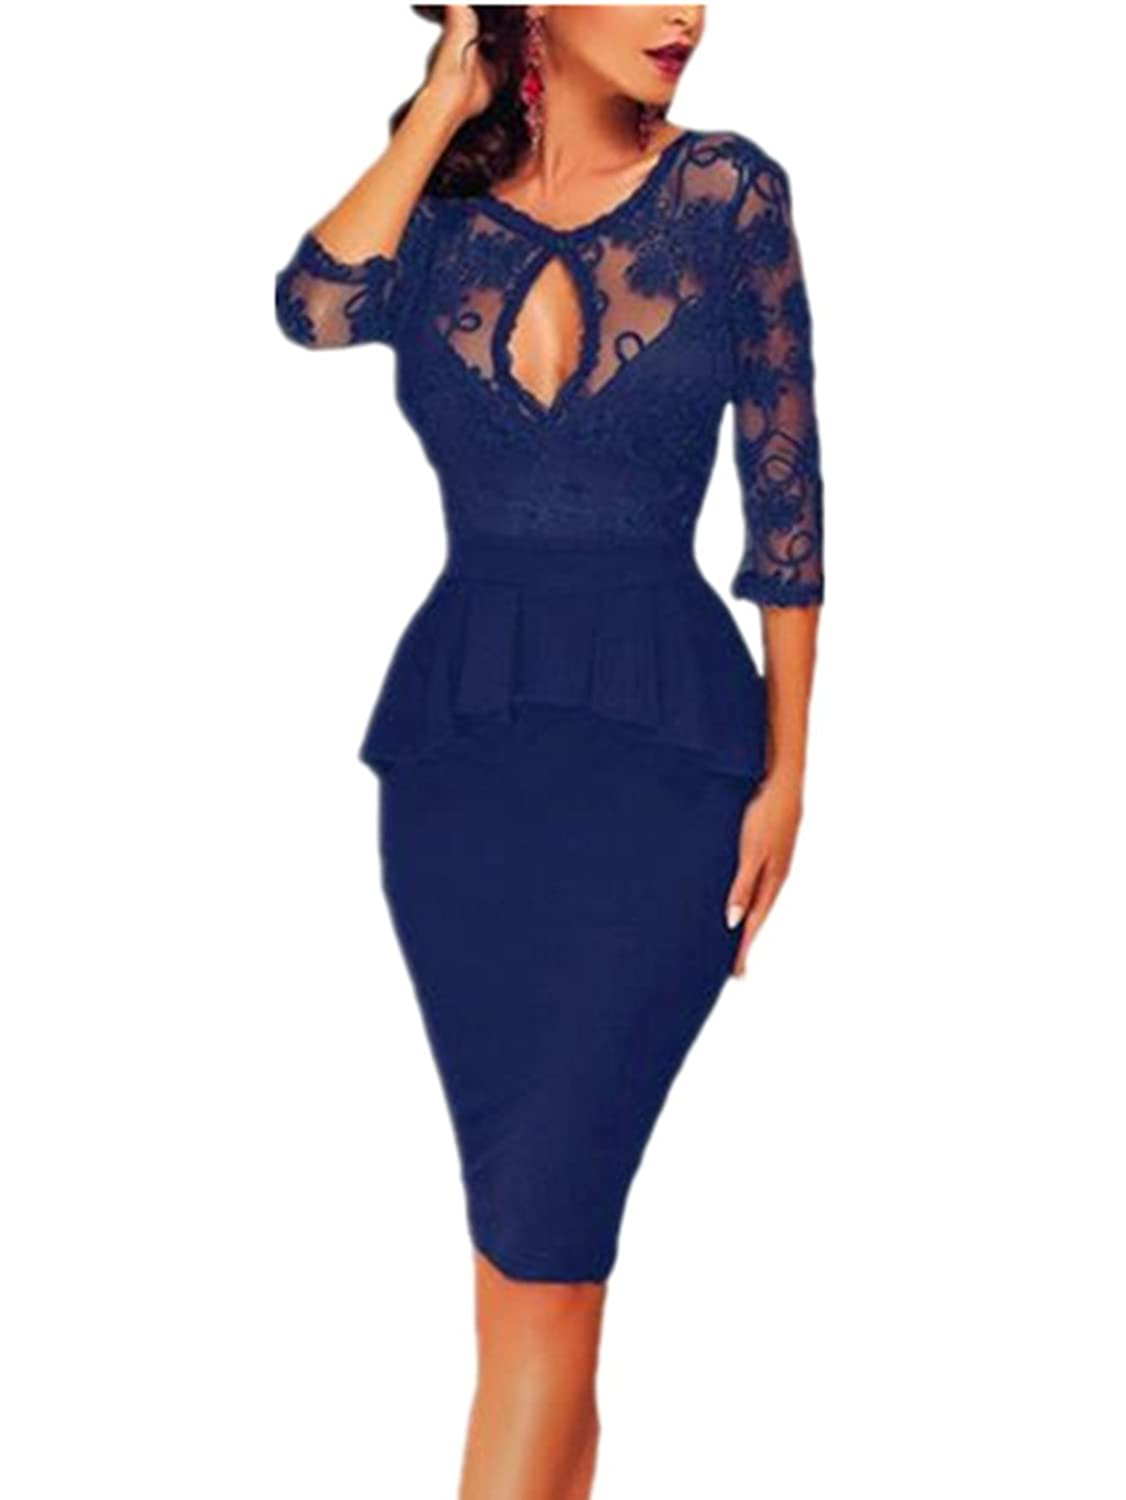 GESELLIE Womens Elegant Sexy Backless Flounce Lace Party Plus Size Bodycon Dress